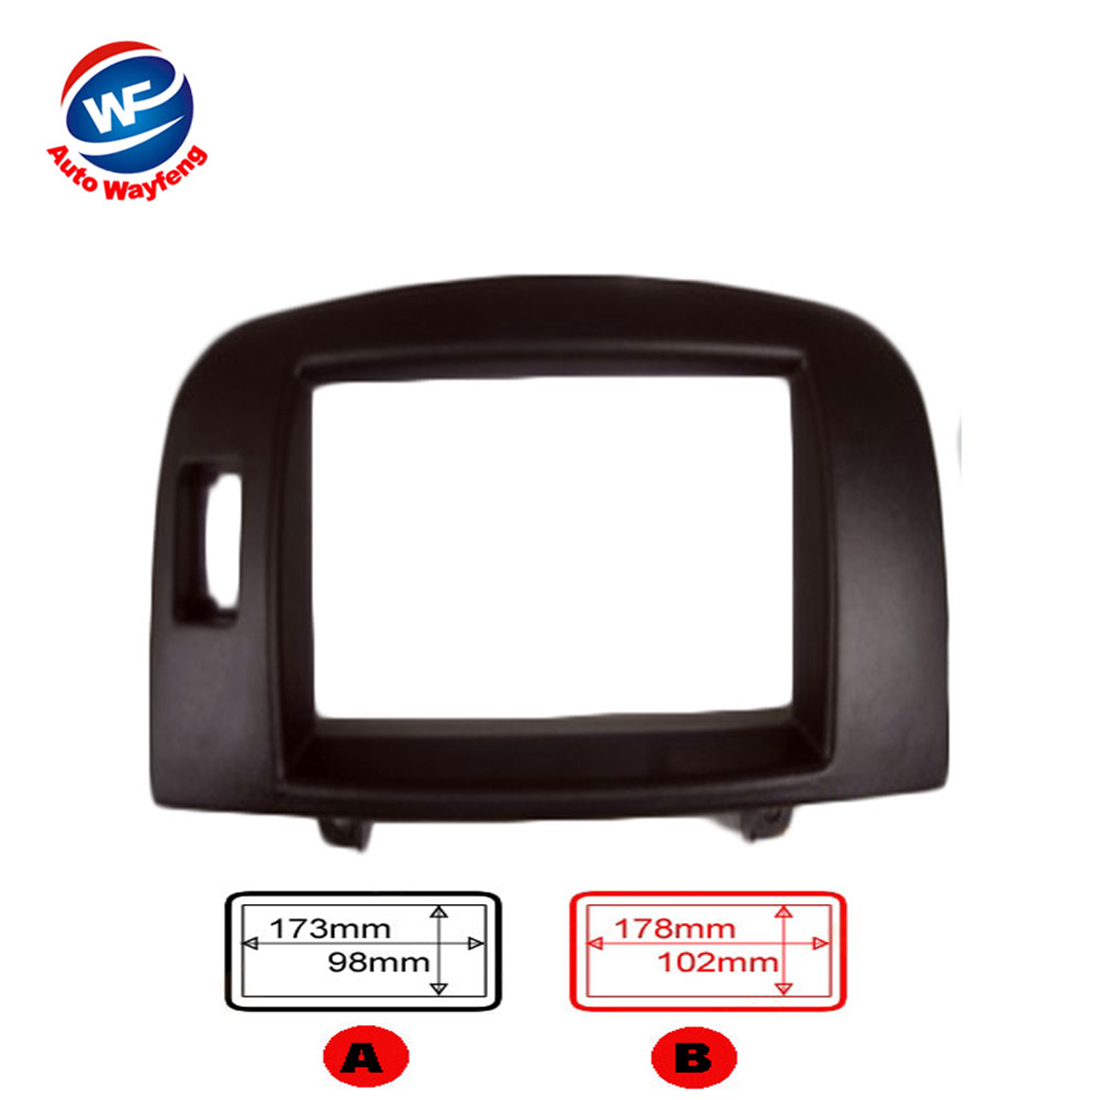 Car Radio Fascia Fit For Hyundai Sonata Nf Sonica 2004 2008 Wo  Airbag Signal Car Dvd Frame